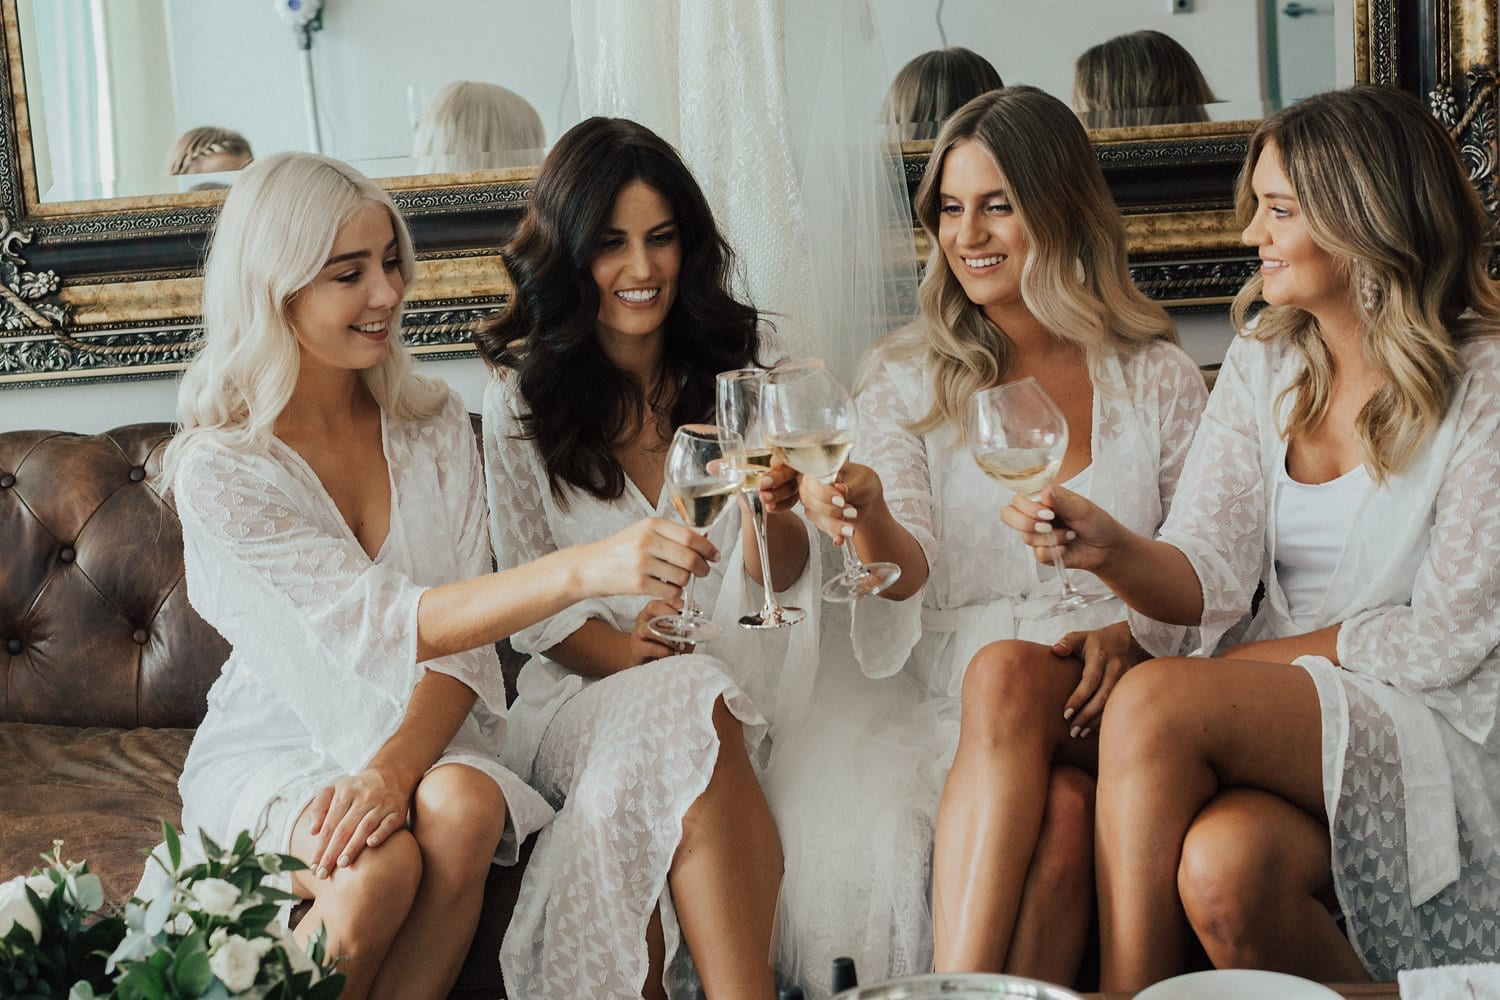 Real Weddings | Vinka Design | Real Brides Wearing Vinka Gowns | Nicole and Hayden - Nicole and bridesmaids cheers before getting ready